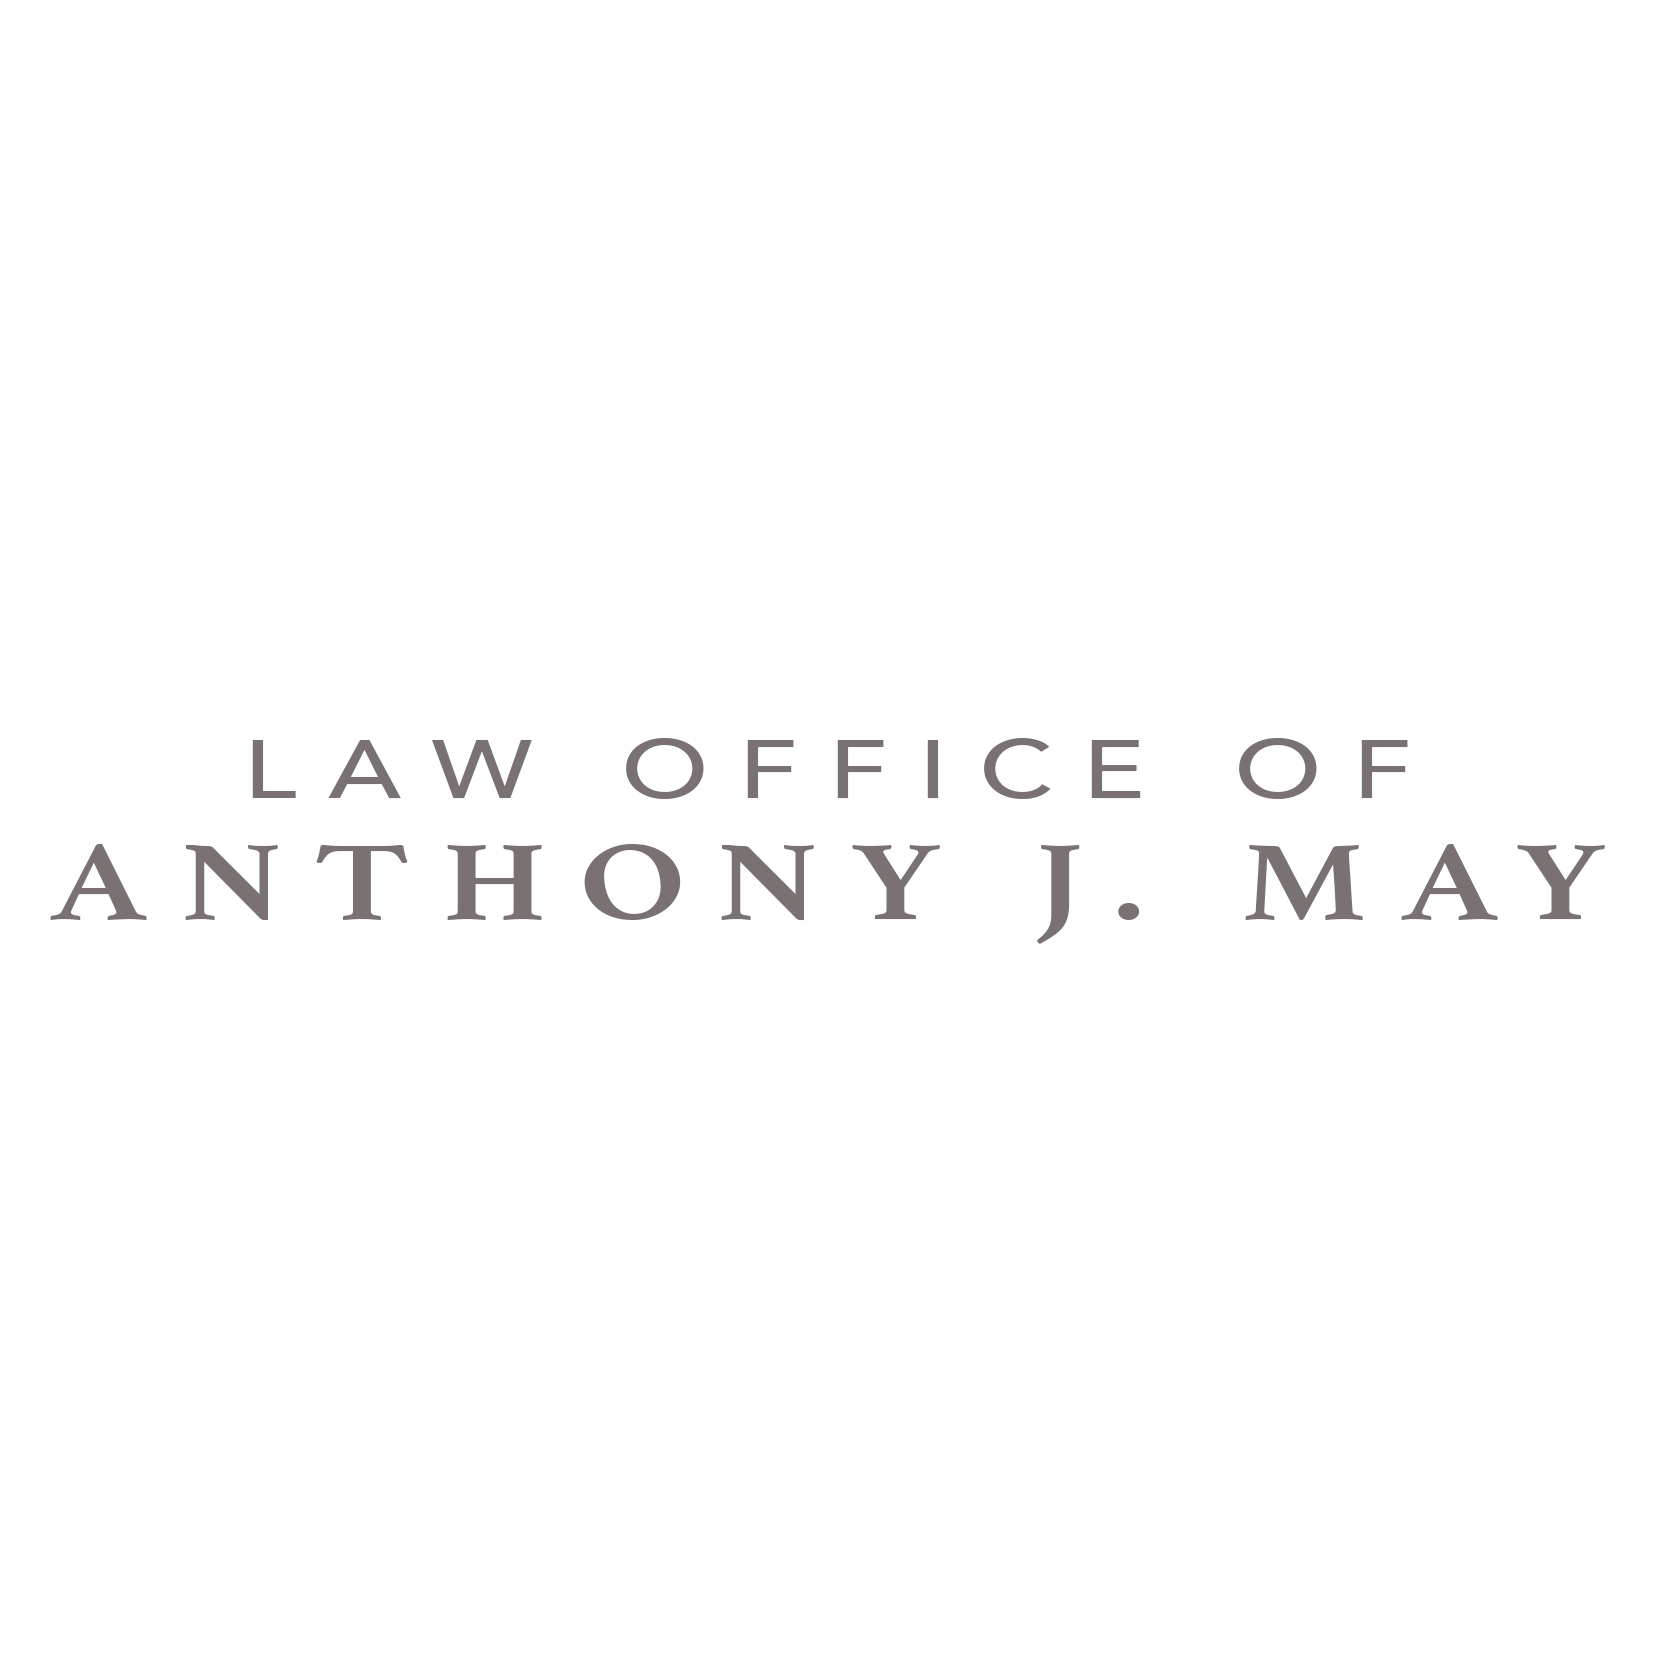 Law Office of Anthony J. May - Waukegan, IL - Attorneys